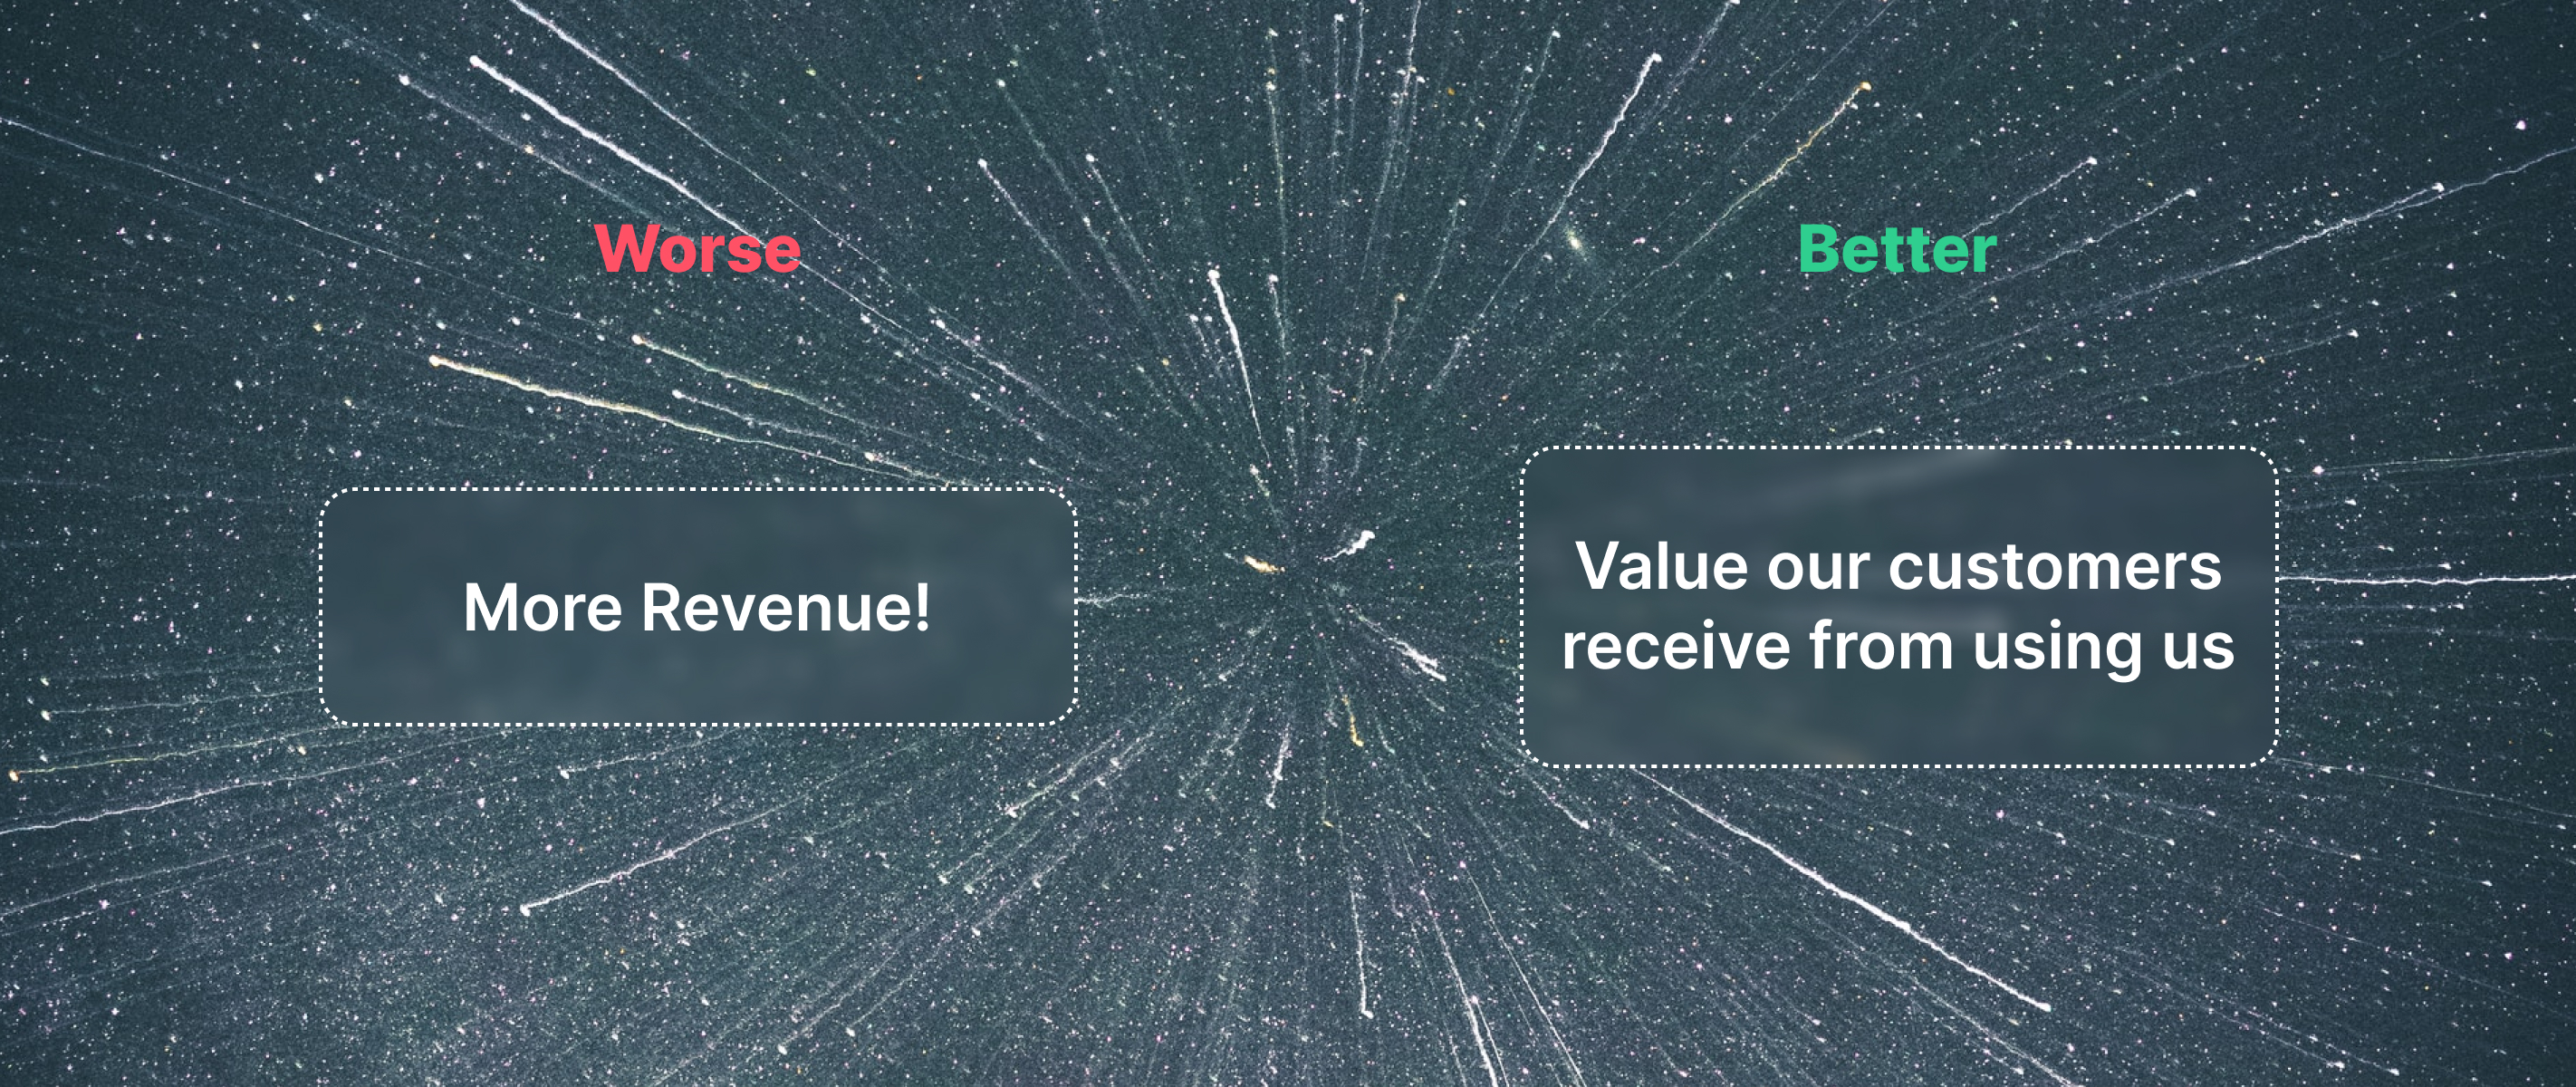 More revenue is a worse North Star Metric than something that measures Value delivery